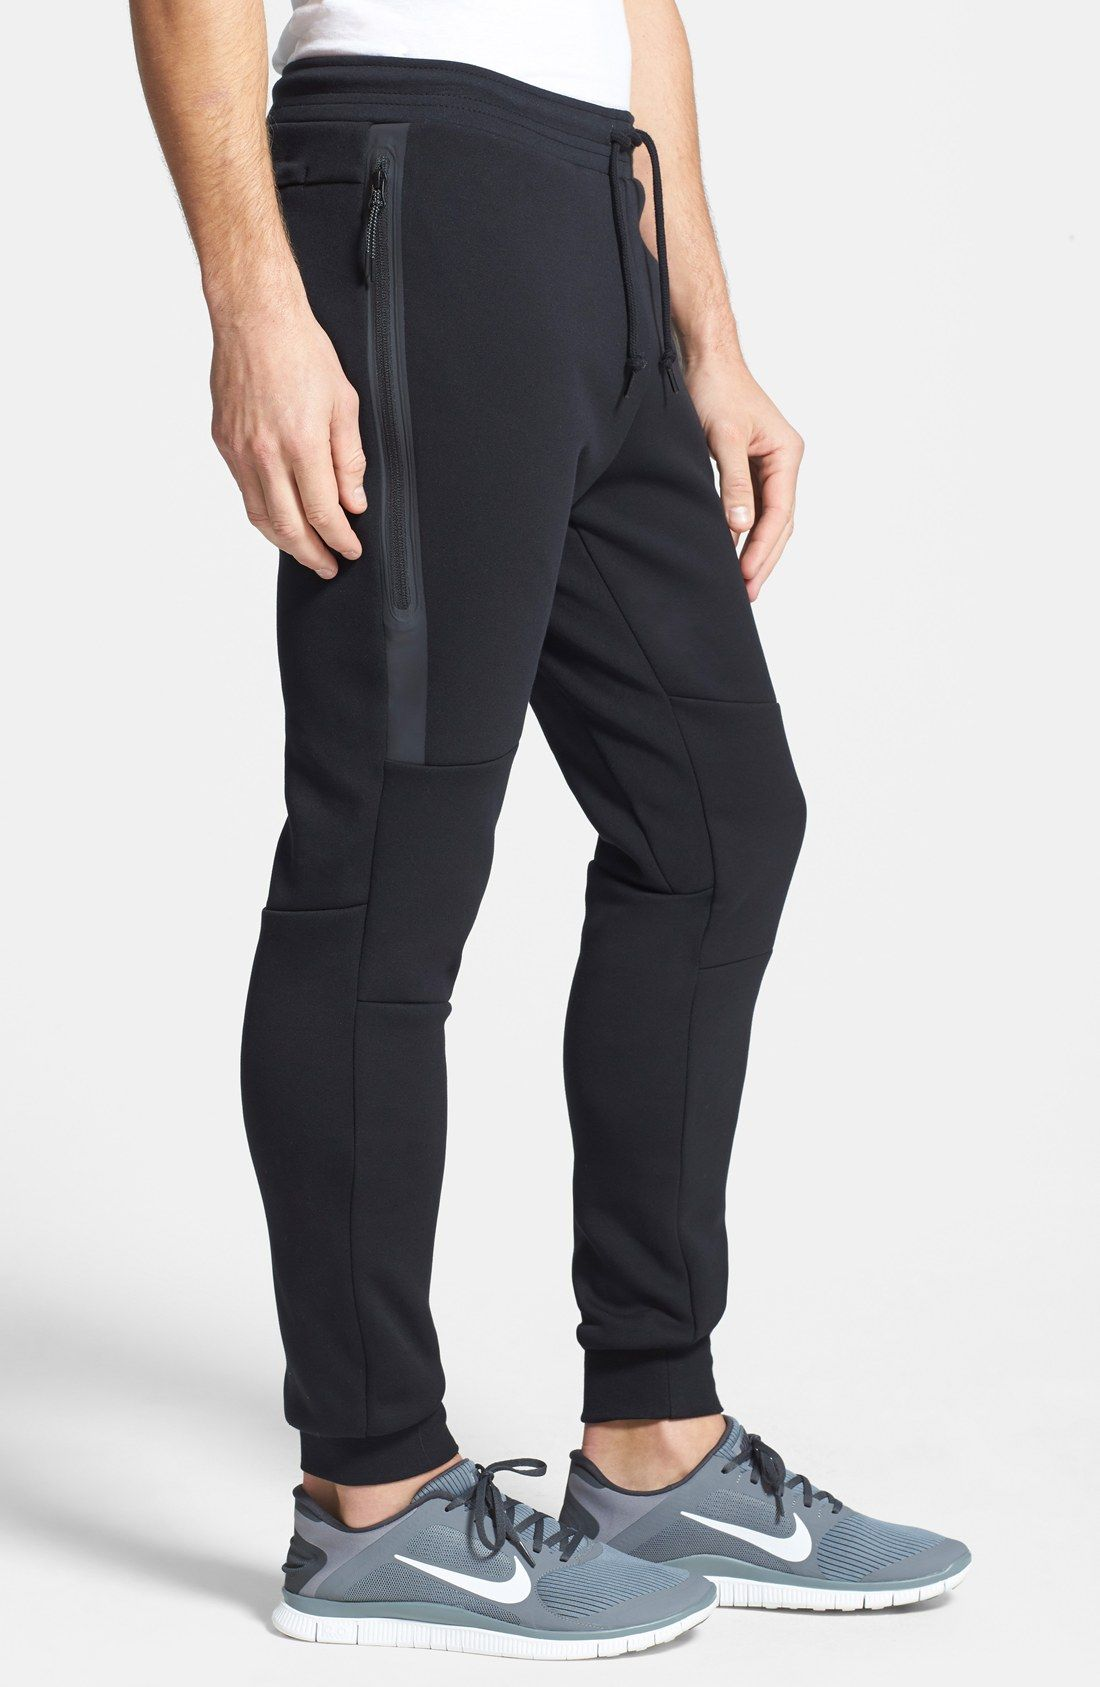 af495e8d407 $100 - Nike 'Tech Fleece' Pants | Pour L'Homme - Outdoor Gear | Nike ...